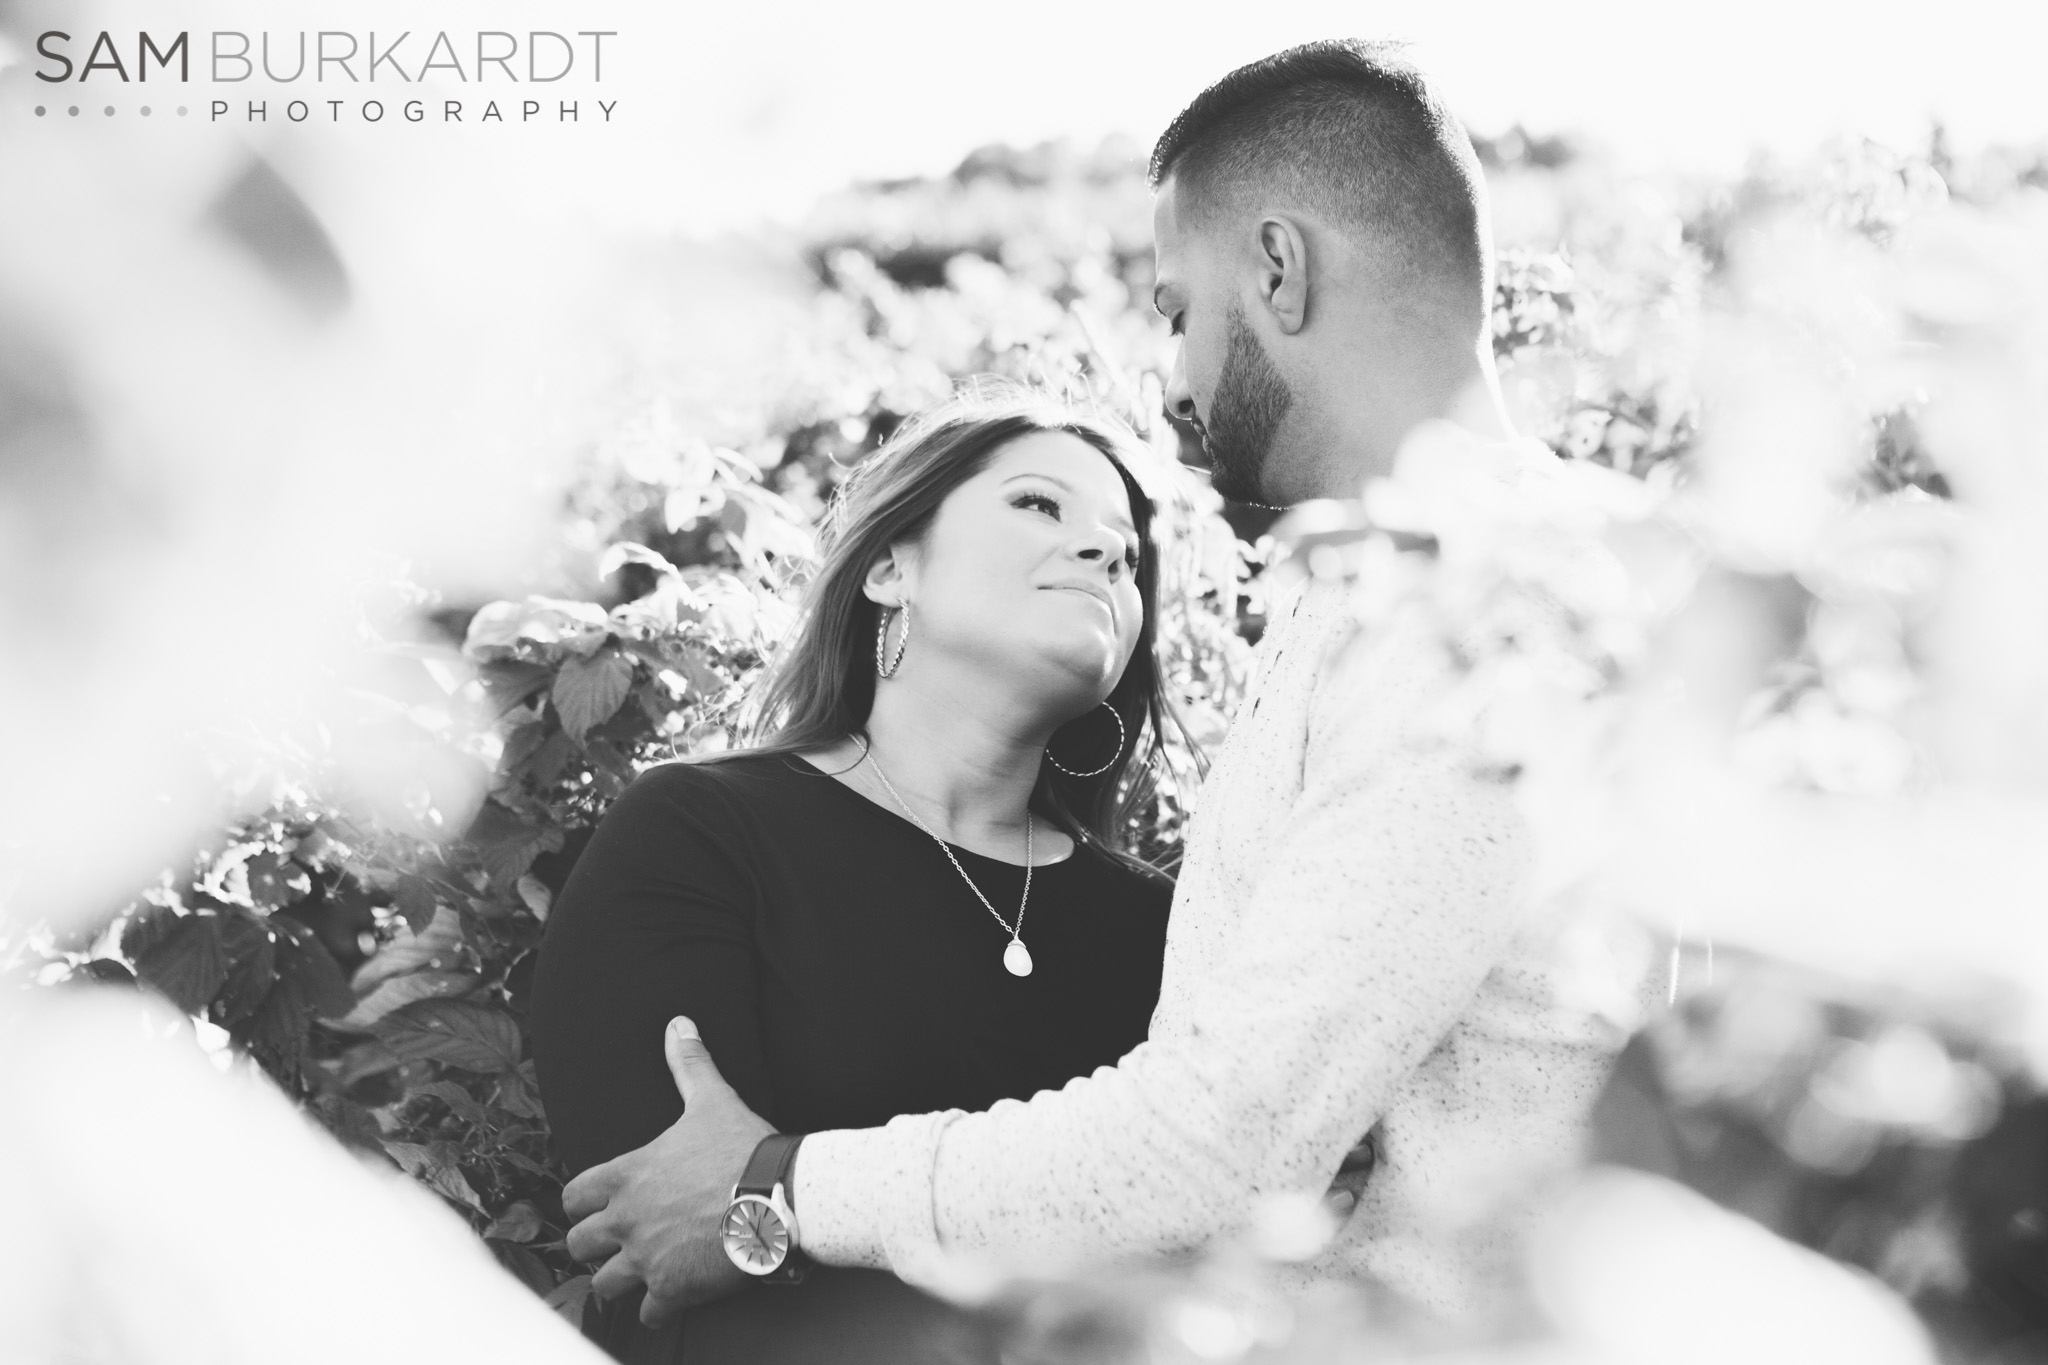 sburkardt_maternity_connecticut_fall_orchard_photography_022.jpg